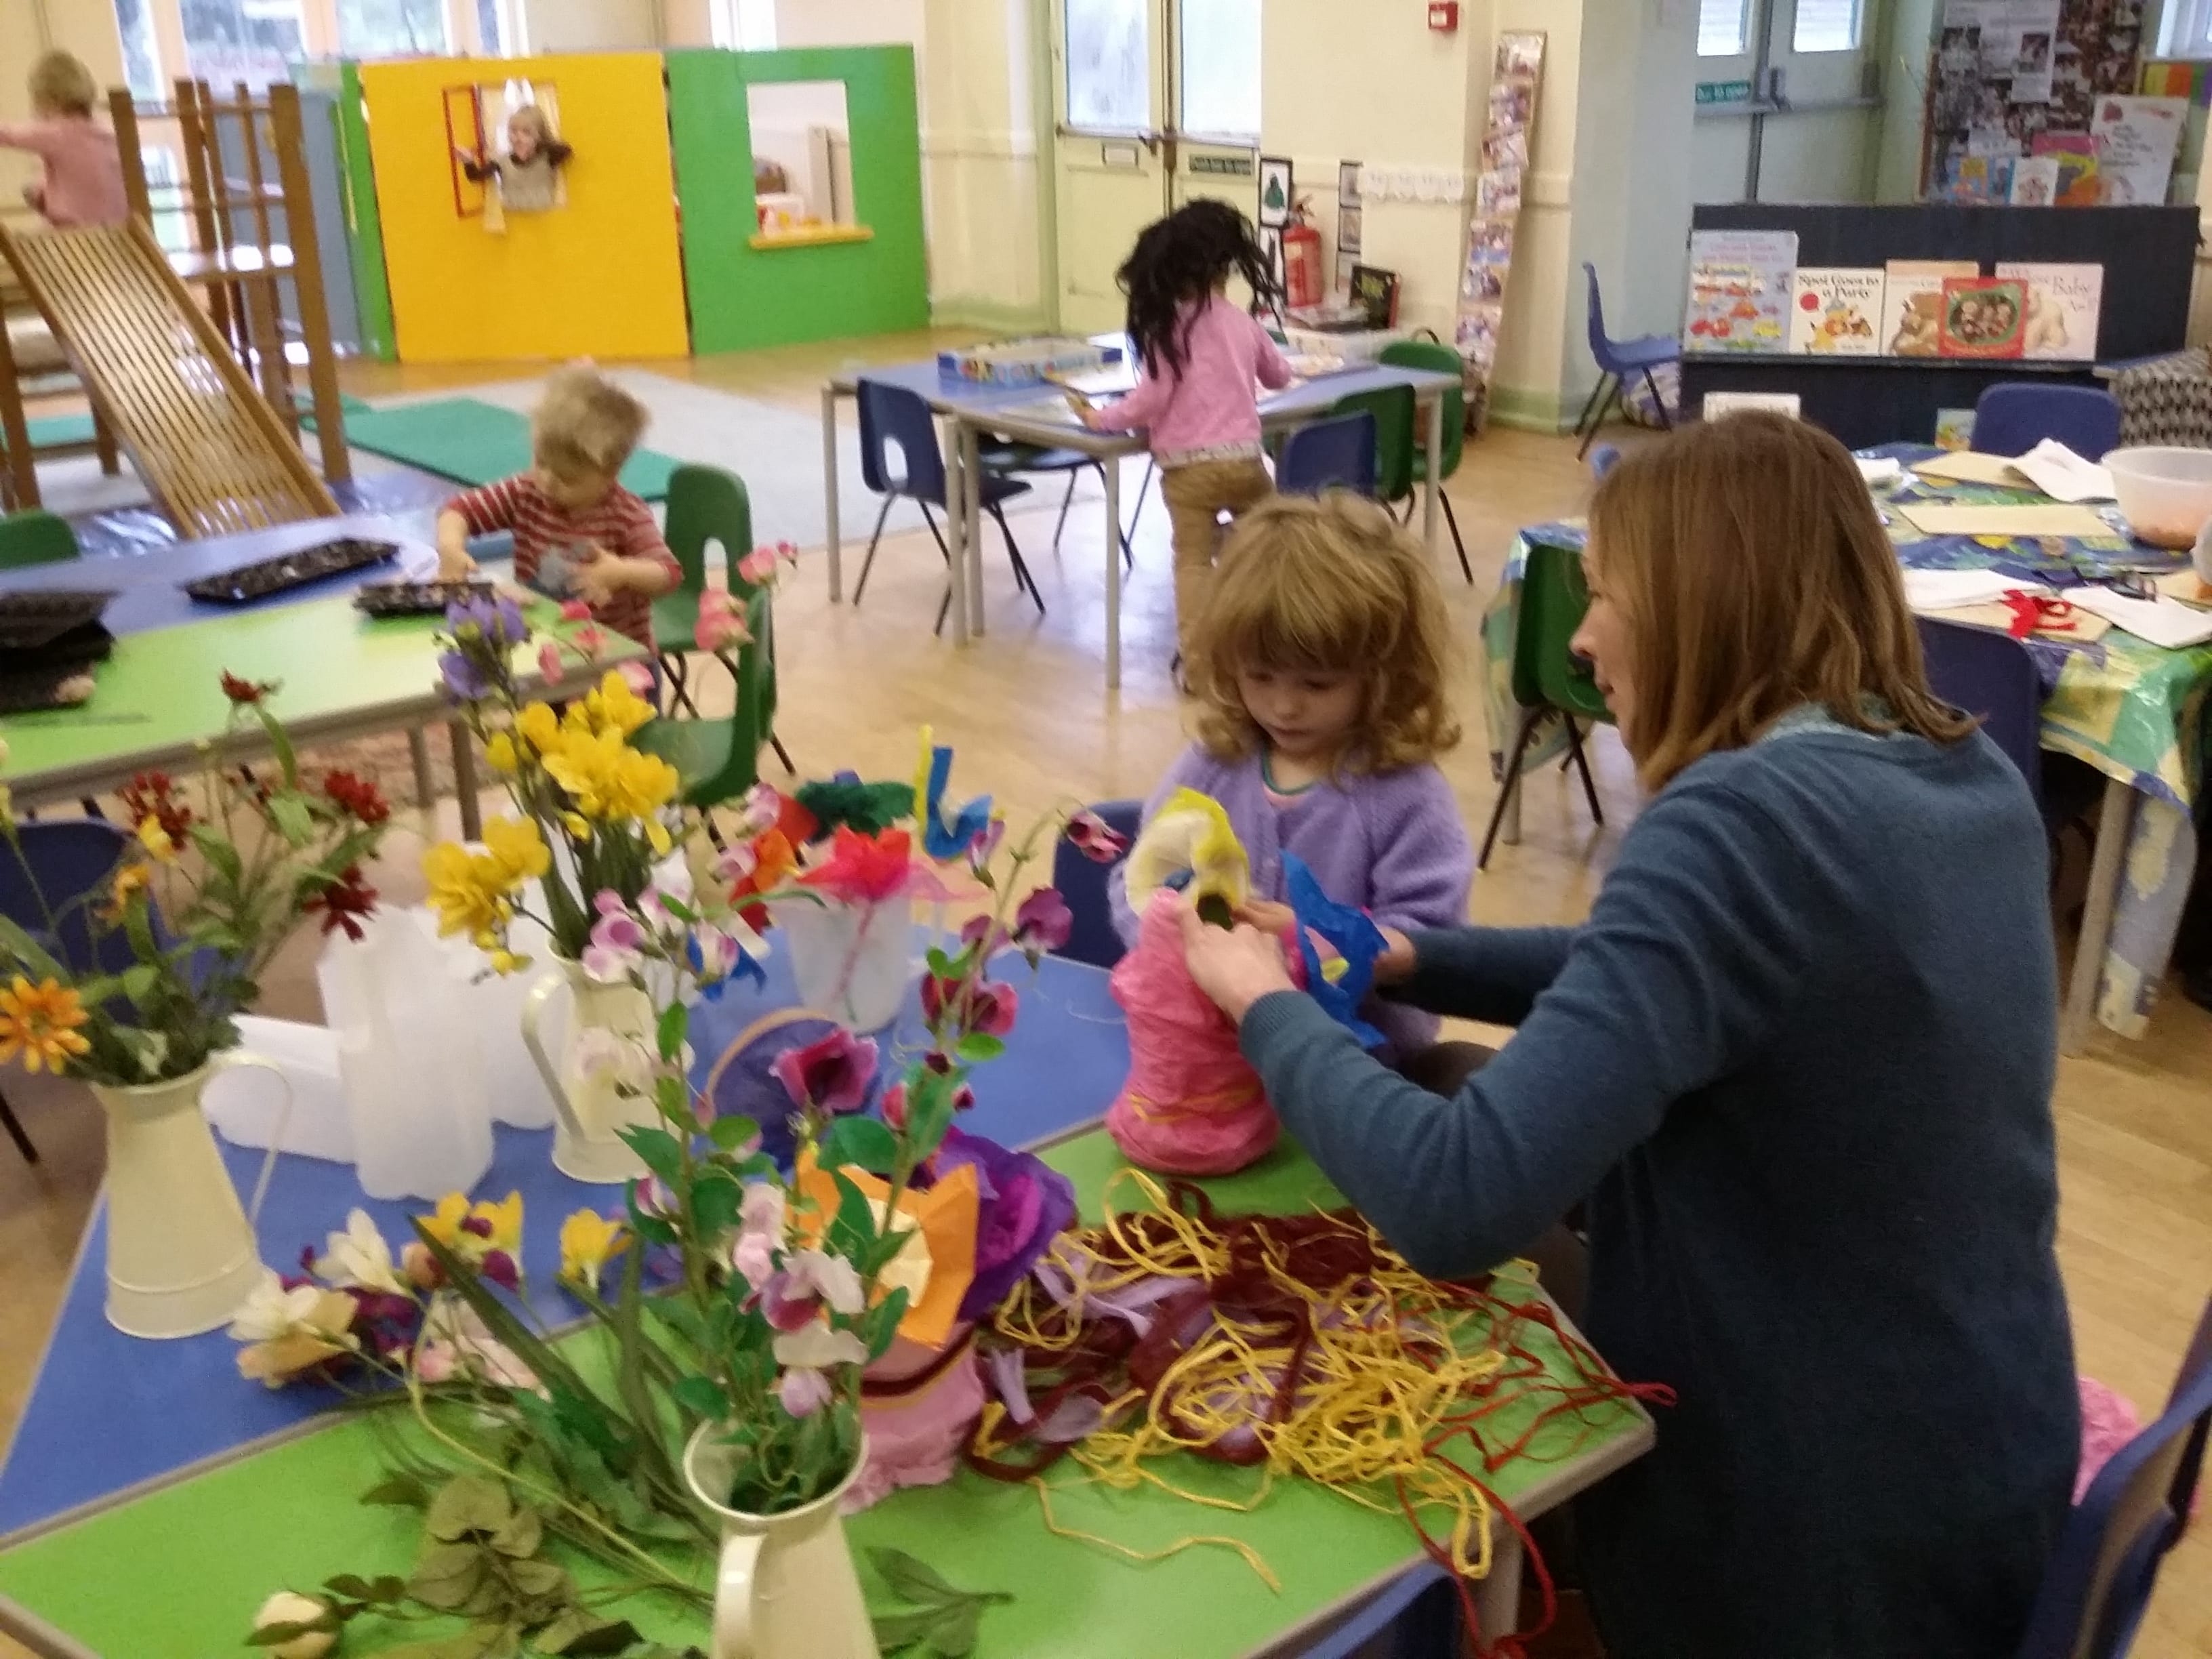 Creating flower decorations